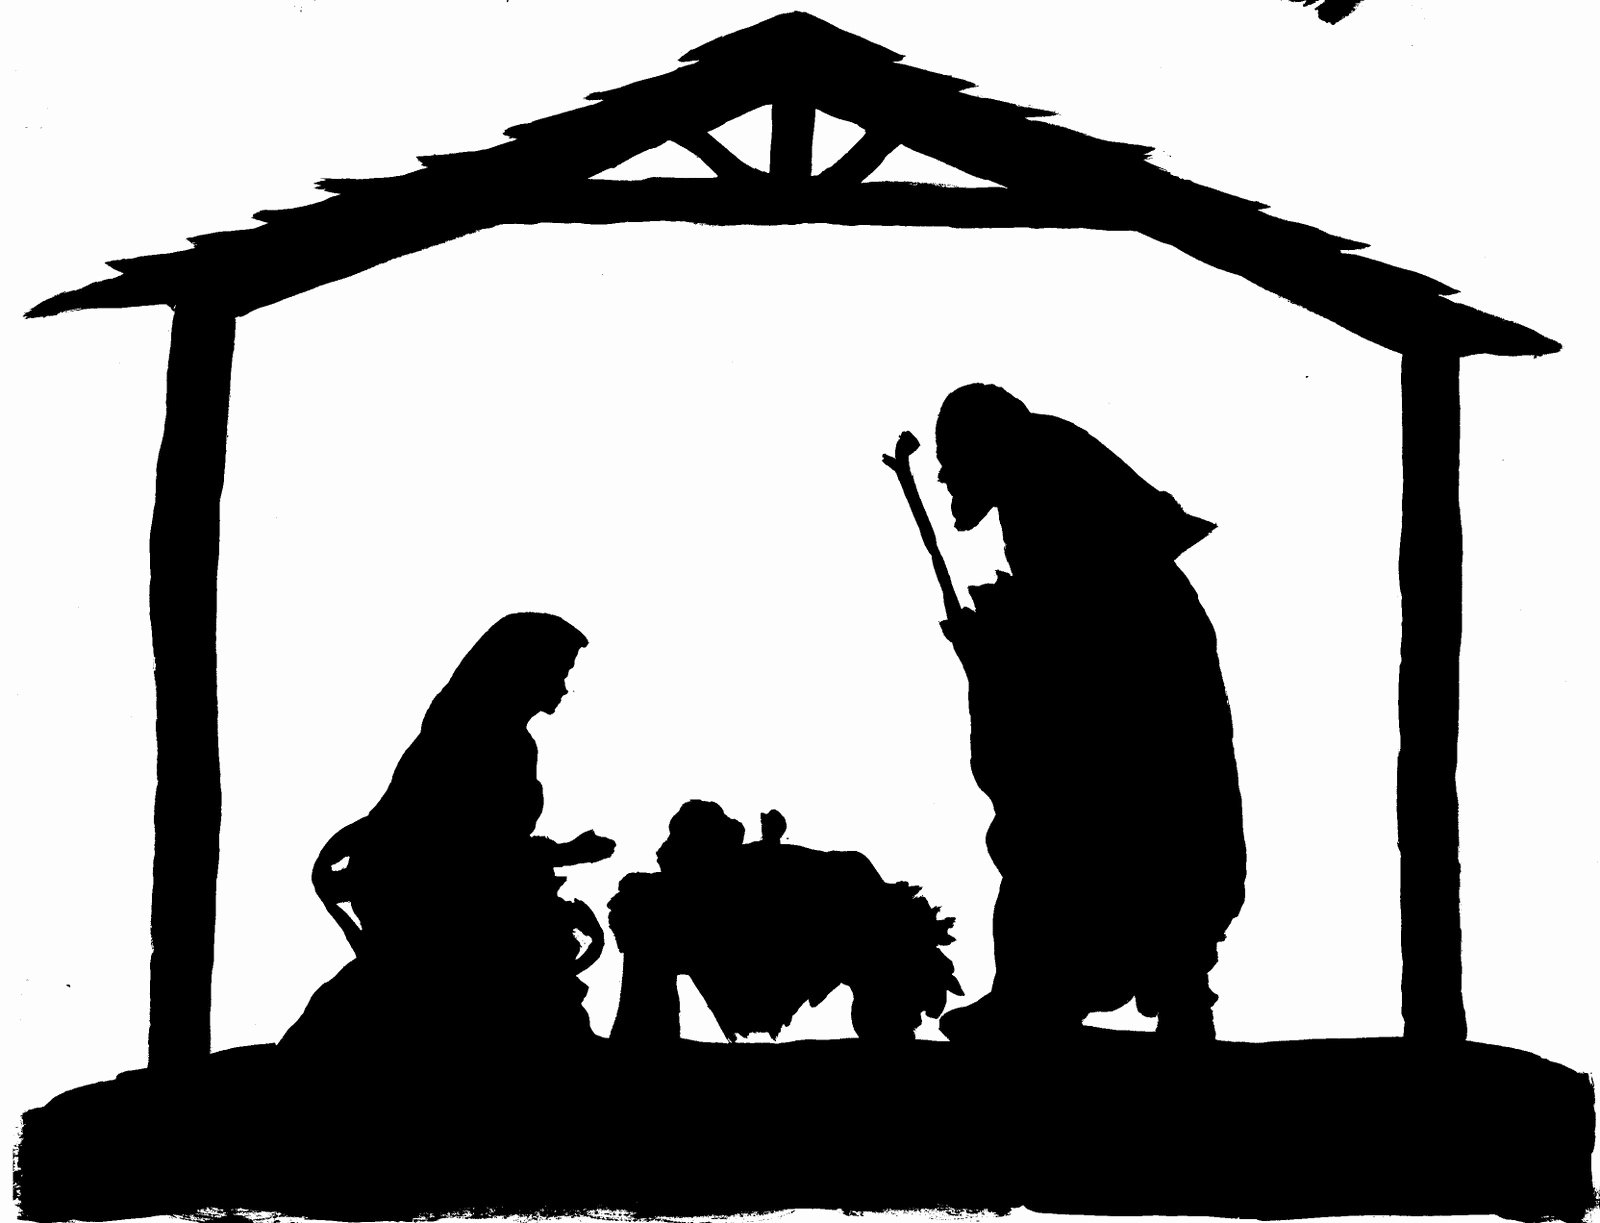 Nativity Scene Silhouette Pattern Beautiful Nativity Silhouette Patterns Clipart Best